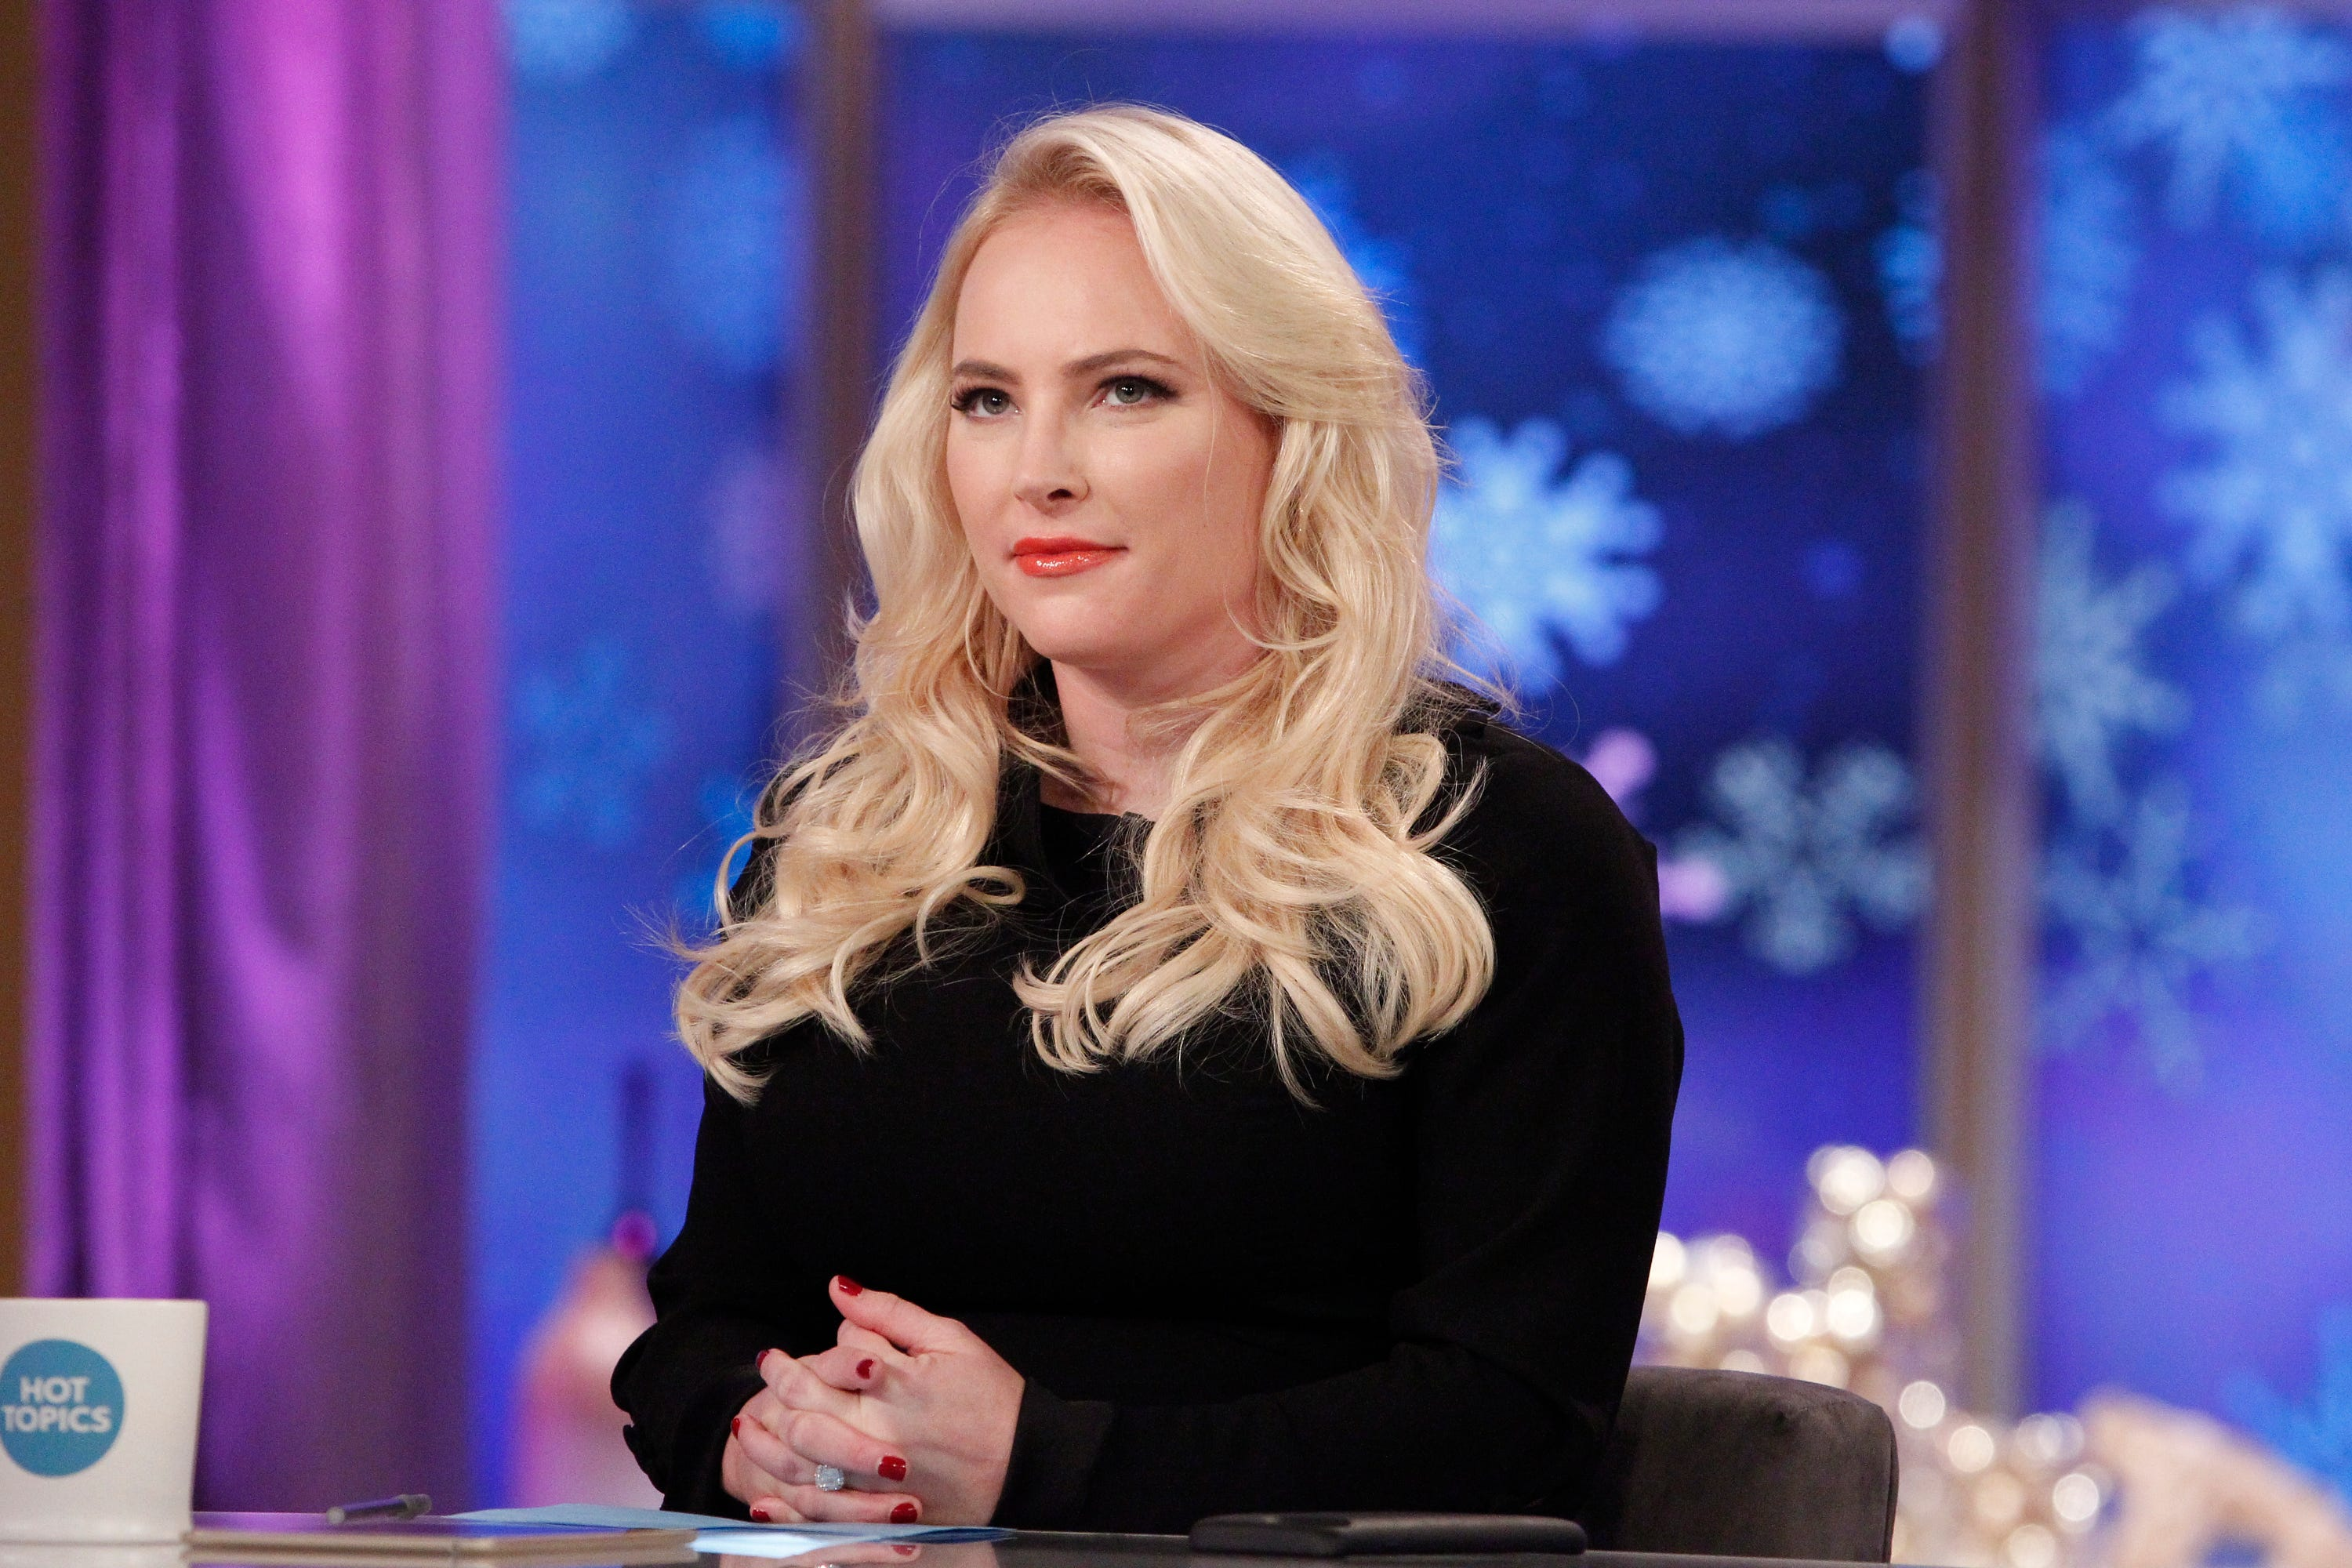 'The View': Meghan McCain spoils 'Game of Thrones' finale ending on air